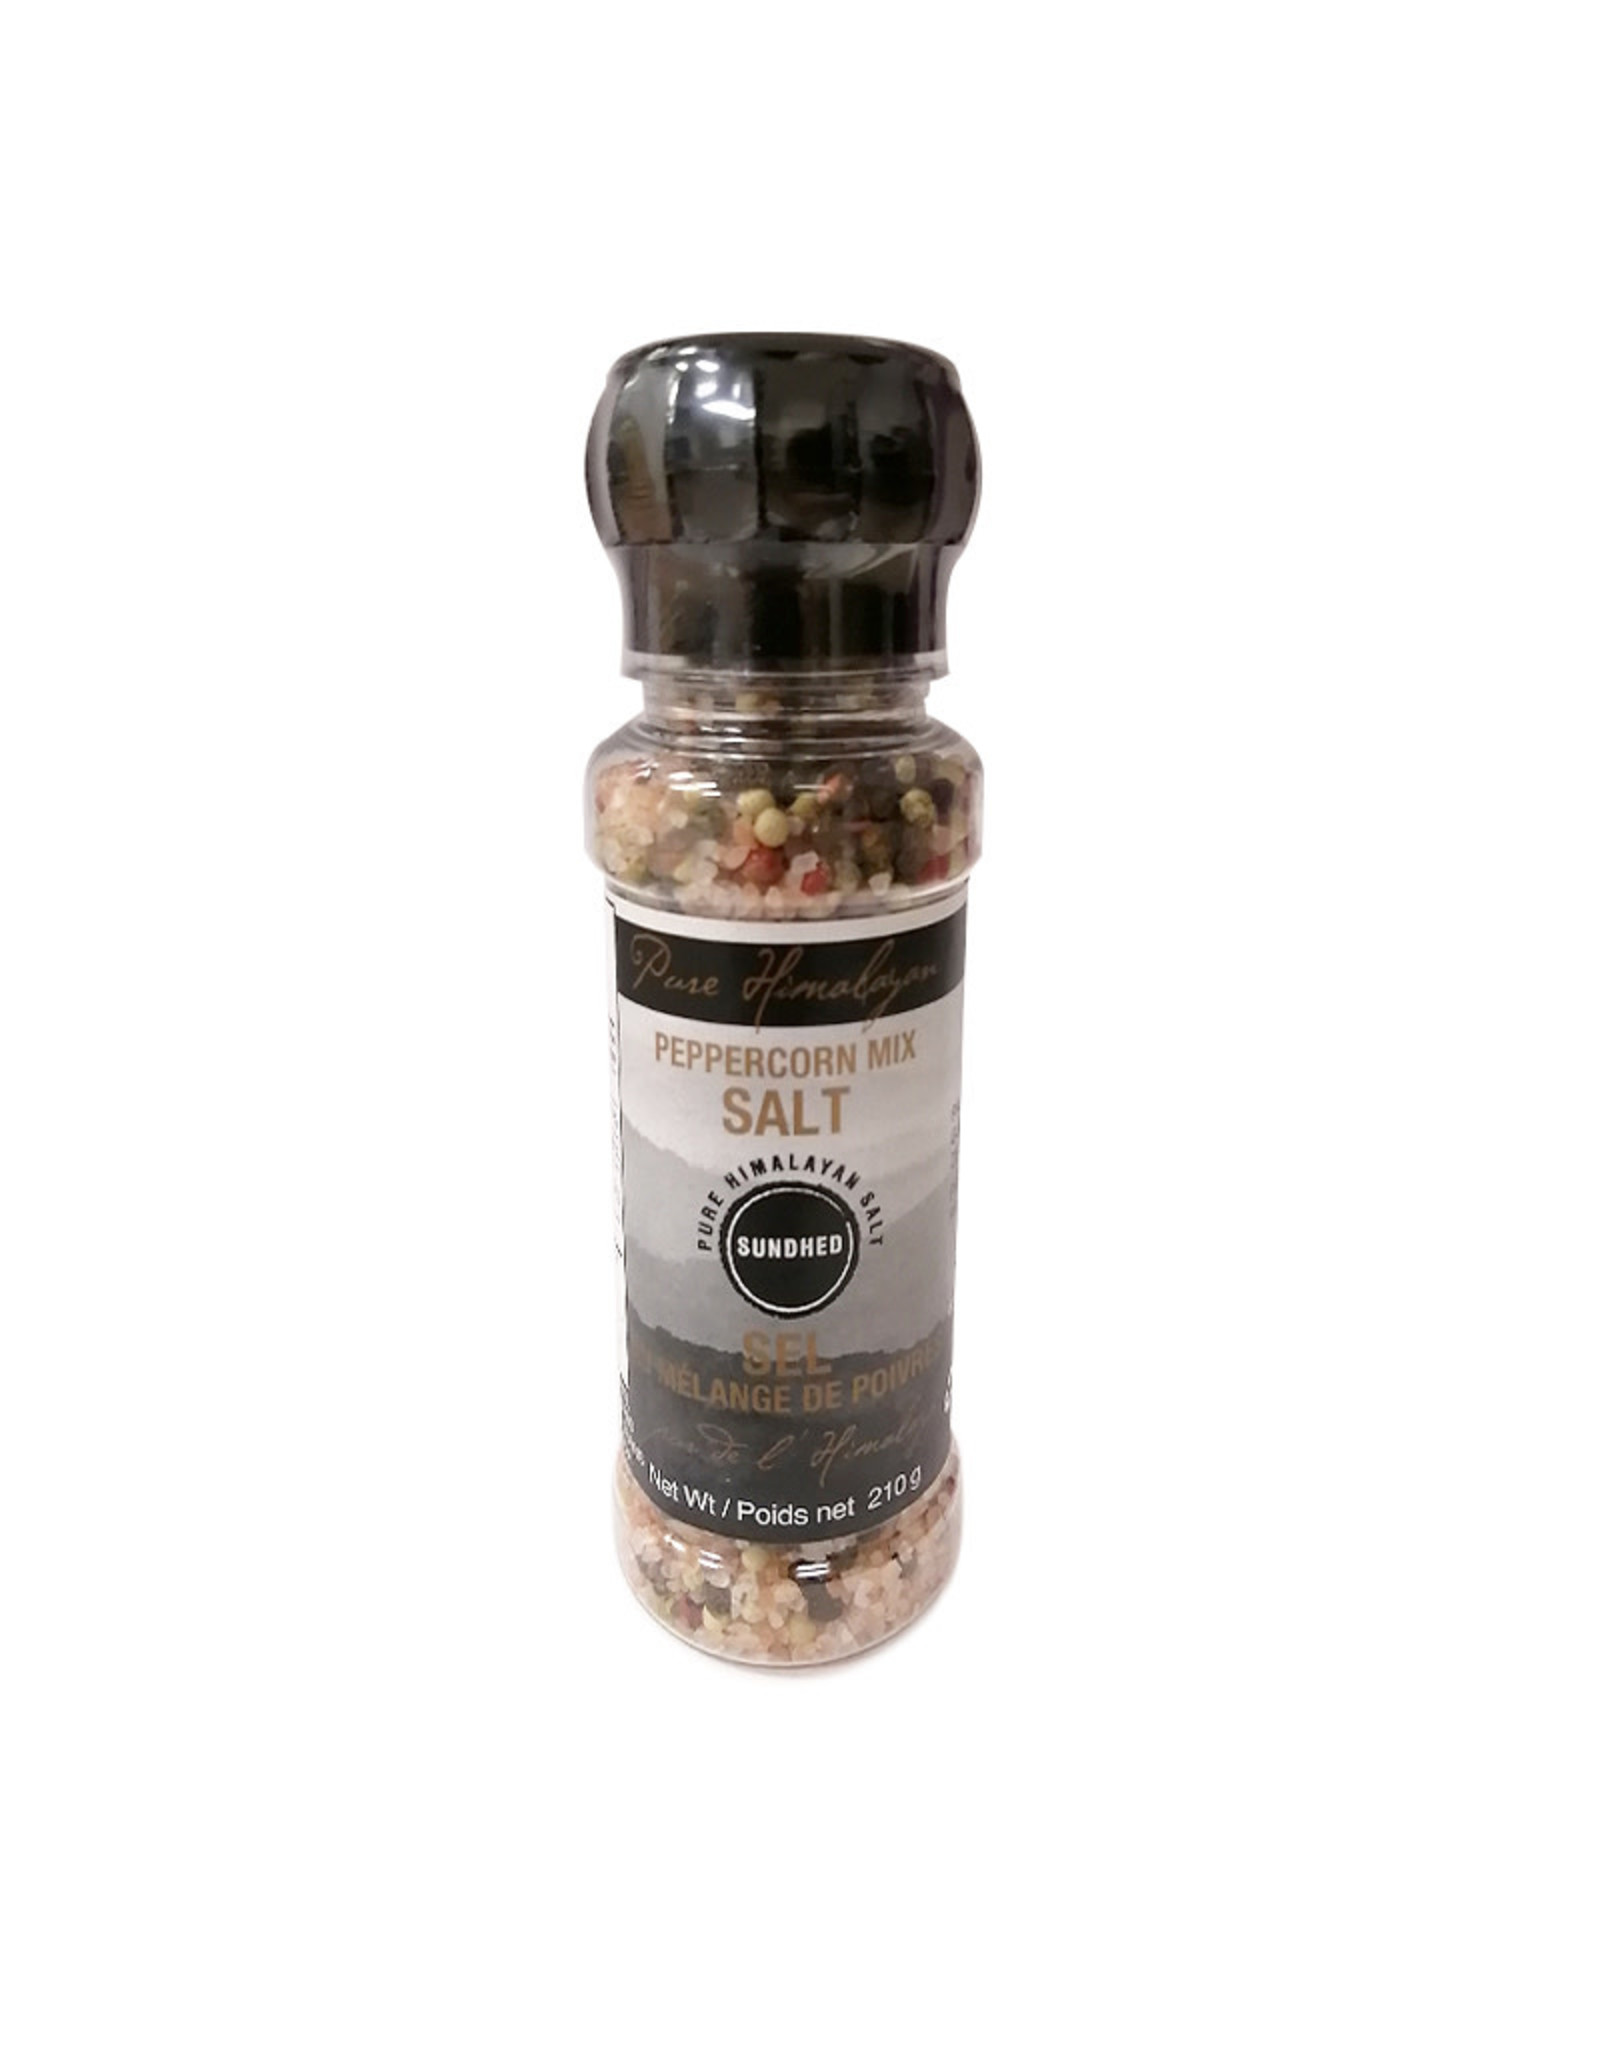 Sundhed Sundhed - Himalayan Salt, Peppercorn Mix with Gringer (210g)